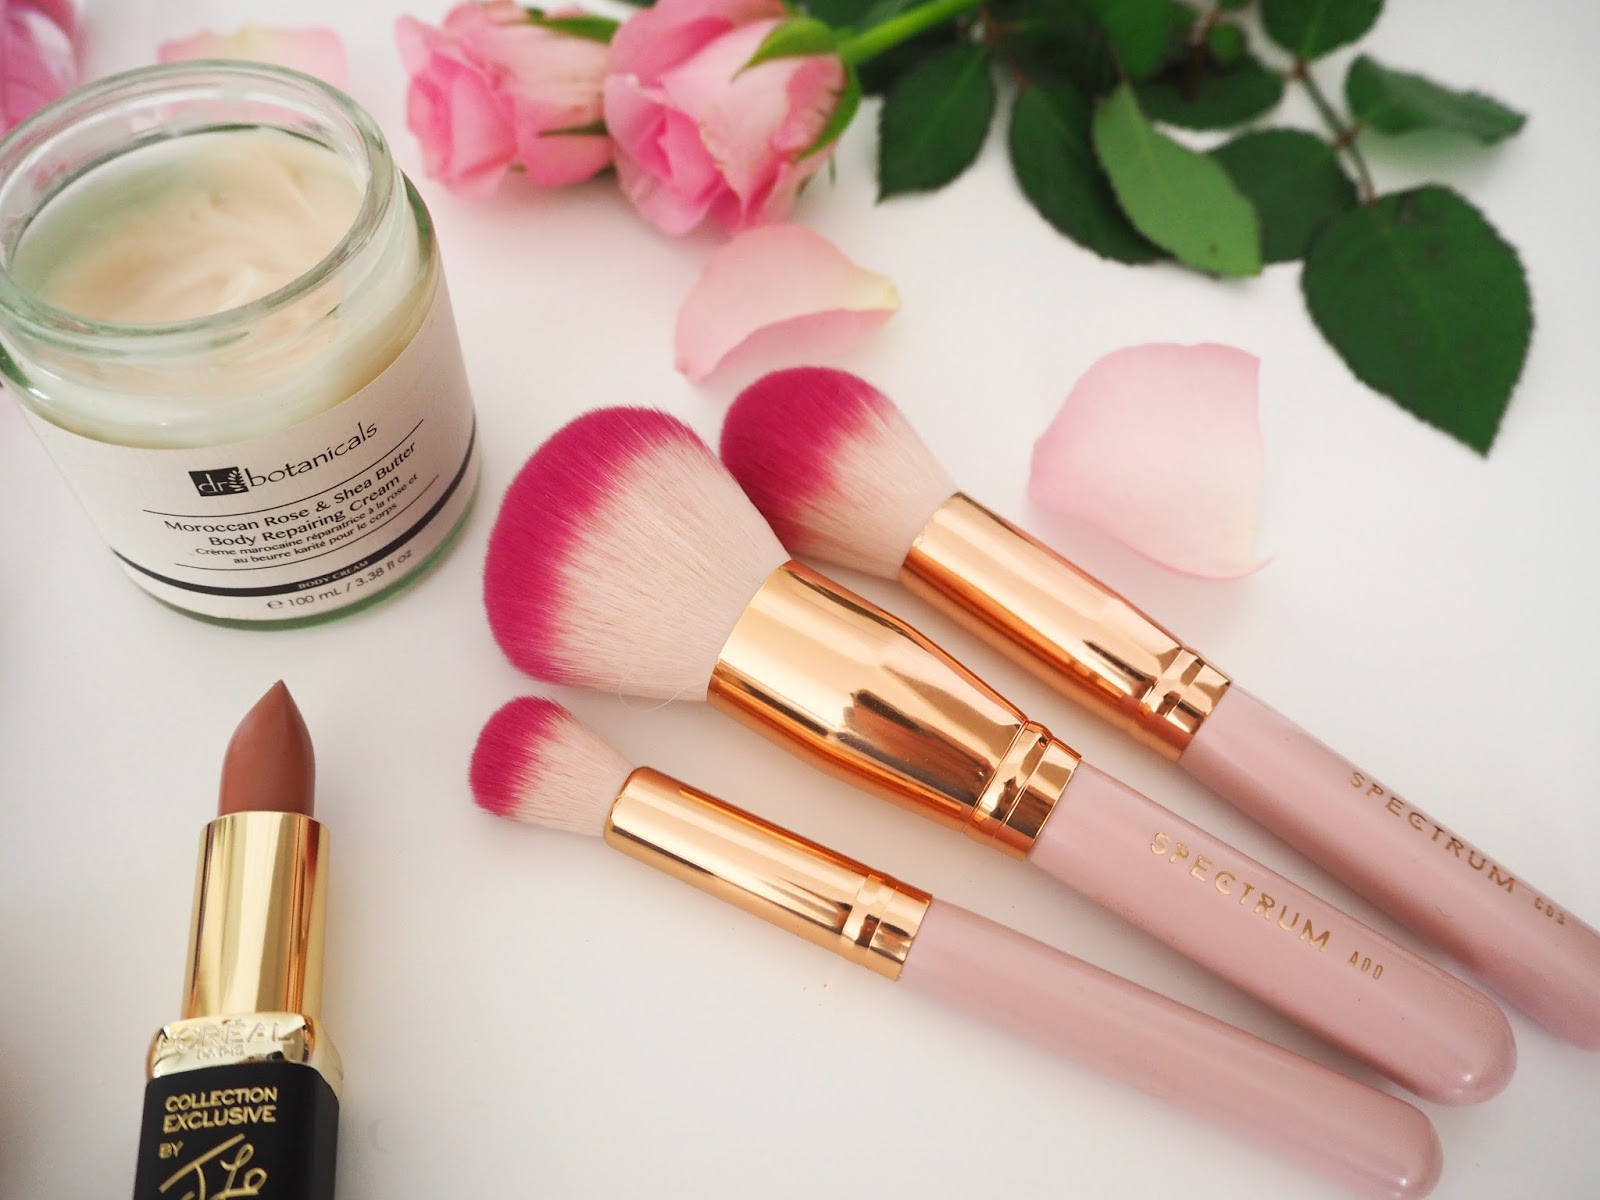 Loves List: February, Katie Kirk Loves, UK Blogger, Beauty Blogger, Make Up Blogger, Beauty Review, Skincare Blogger, Rimmel London, Yankee Candle, Spectrum Collections Brushes, Loreal Make Up, Dr Botanicals, So Fragrance, Pink Products, Pink Make Up